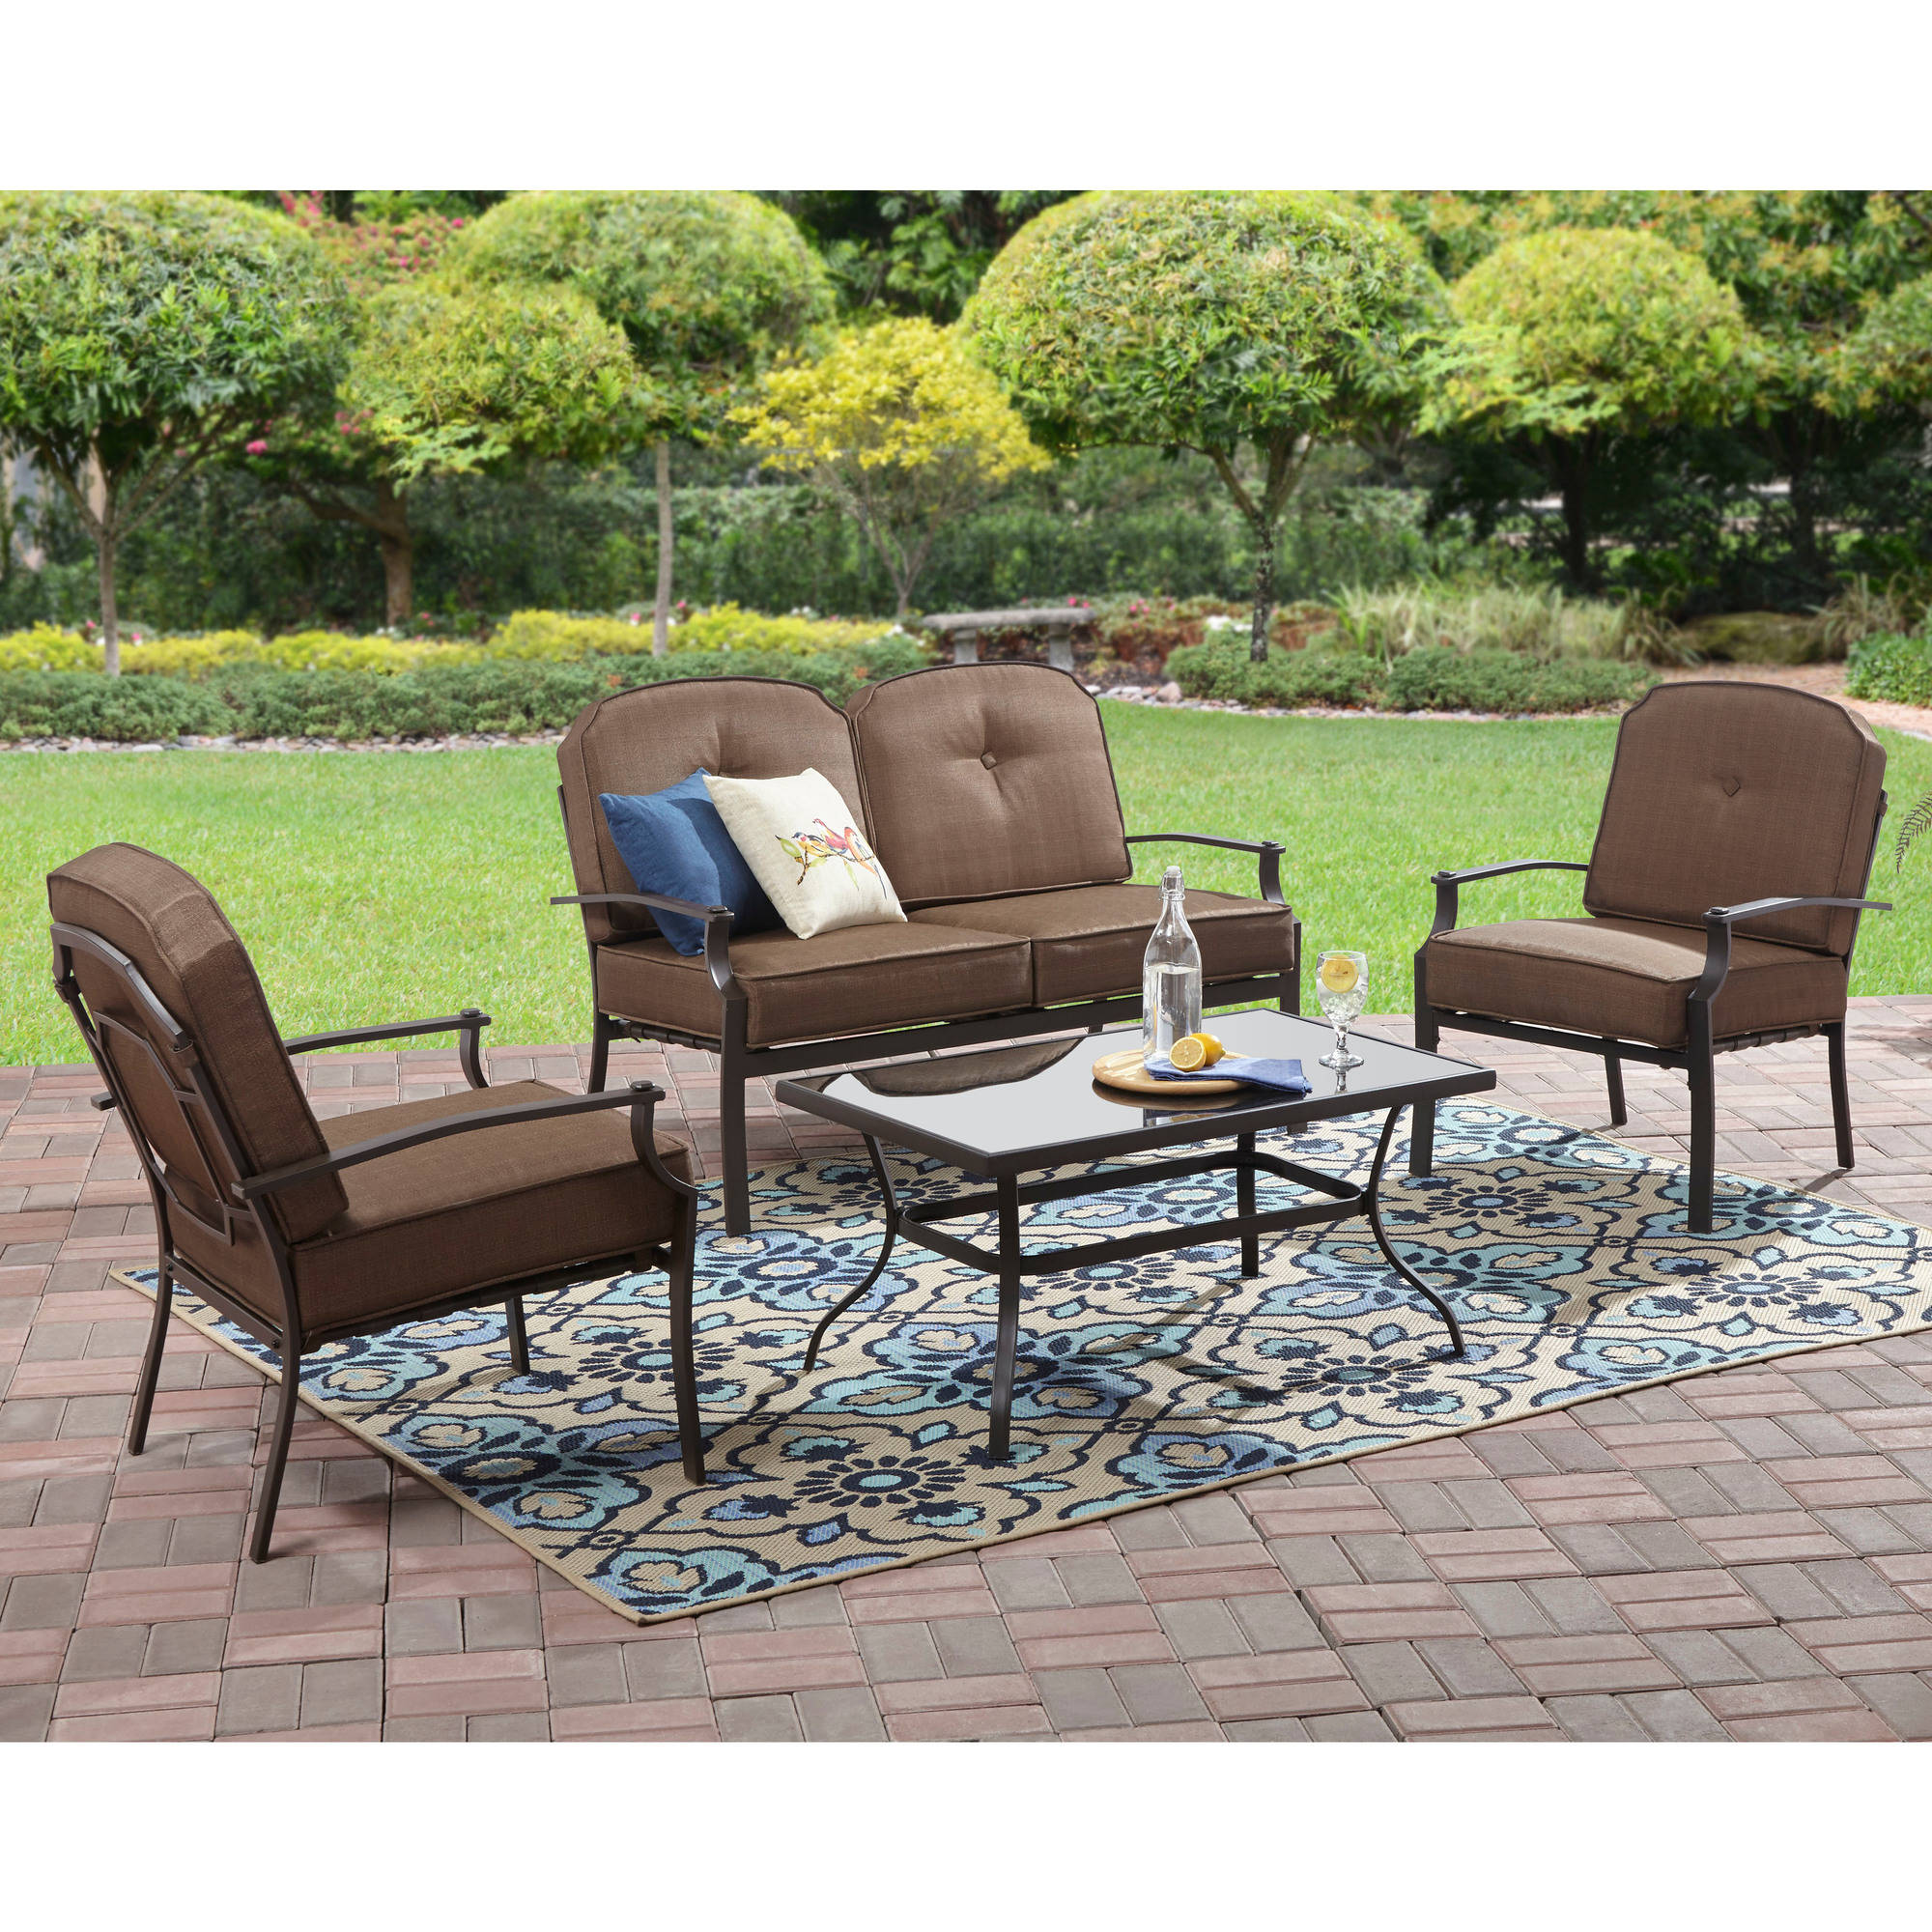 Mainstays Wentworth 4 Piece Patio Conversation Set Seats 4